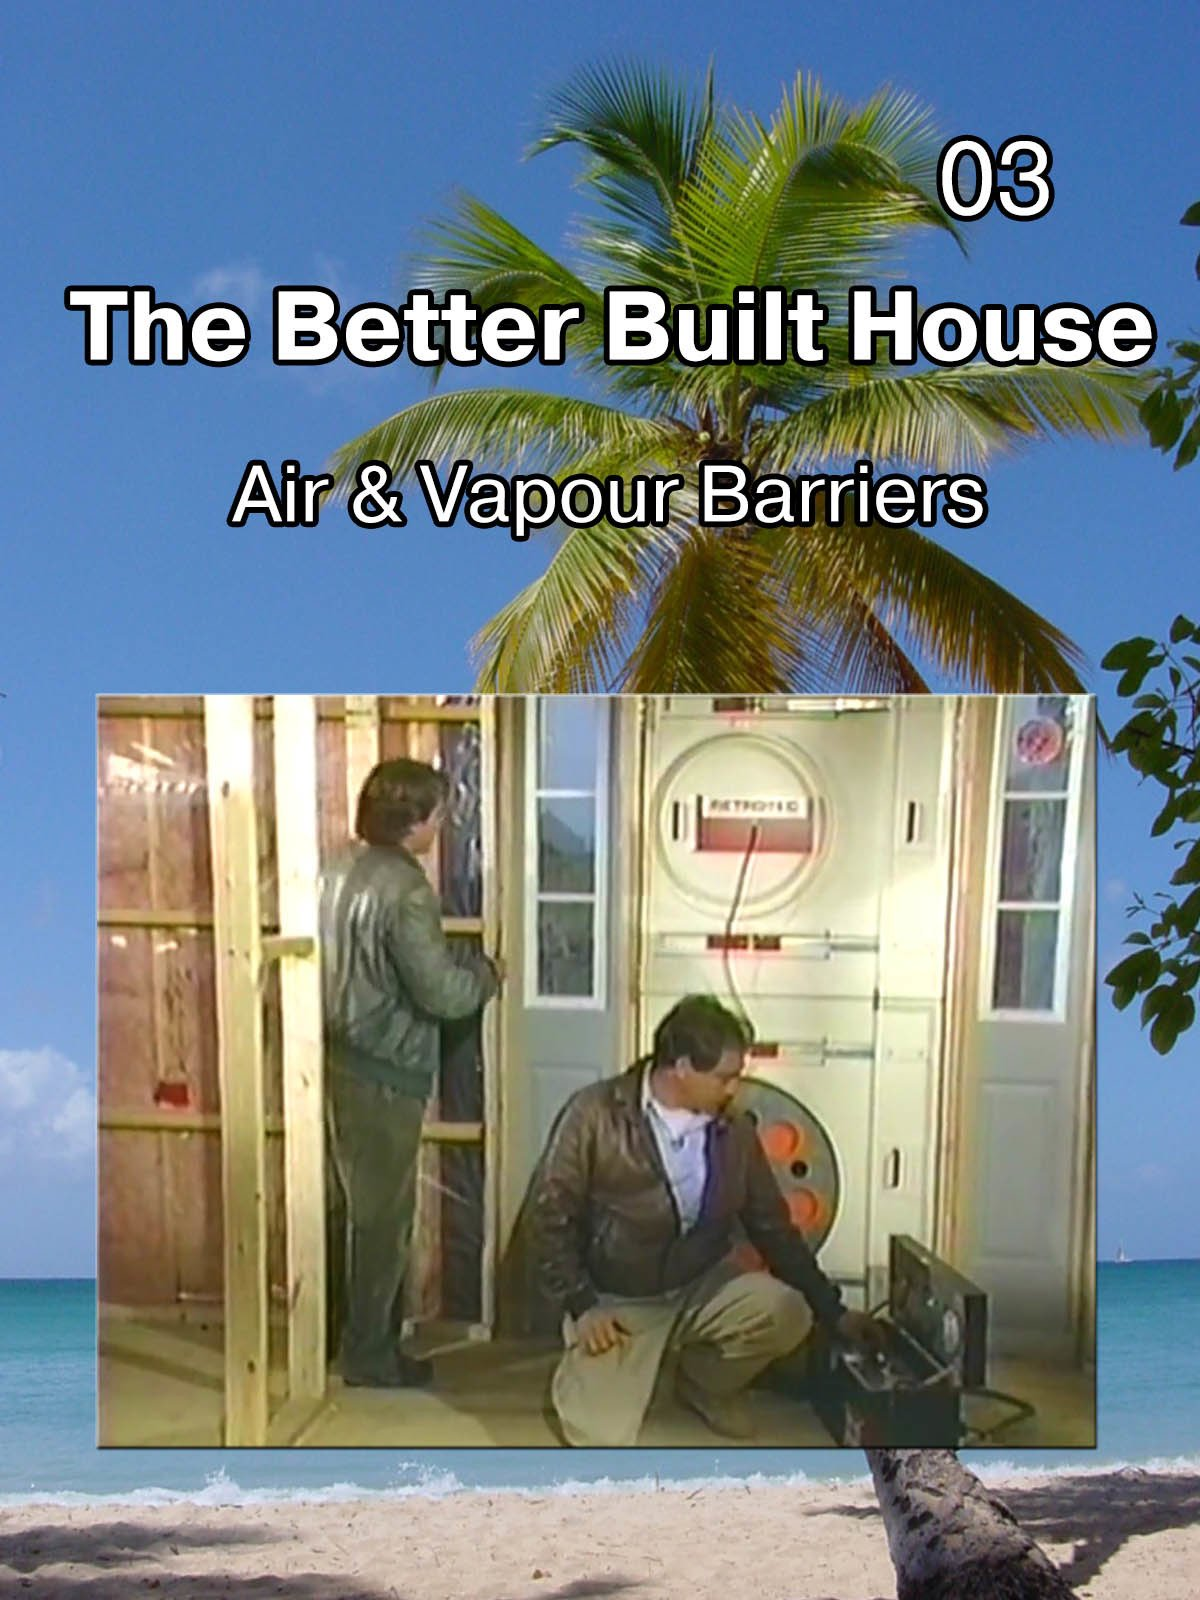 The Better Built House 03 Air & Vapour Barriers